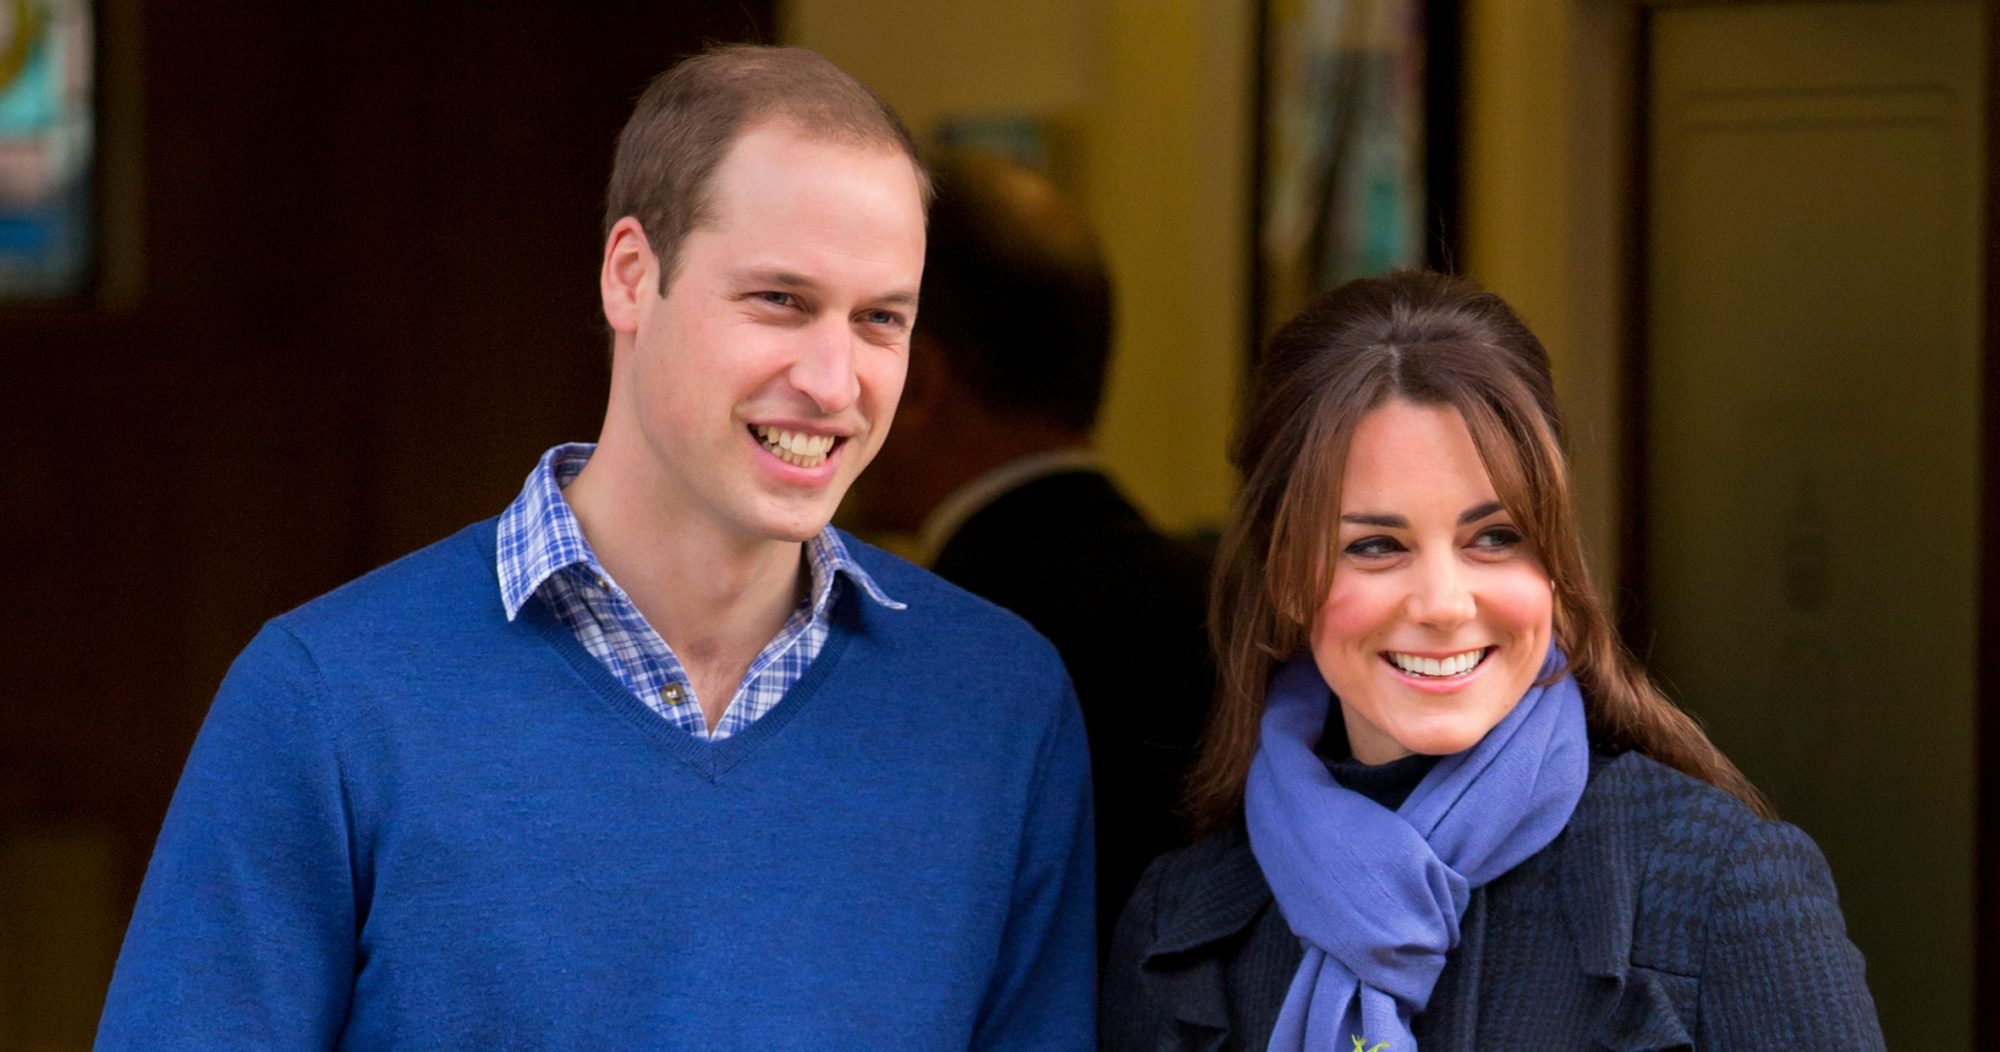 Kate Middleton Opened Up About the Toll Her Morning Sickness Took On Both Her and Prince William